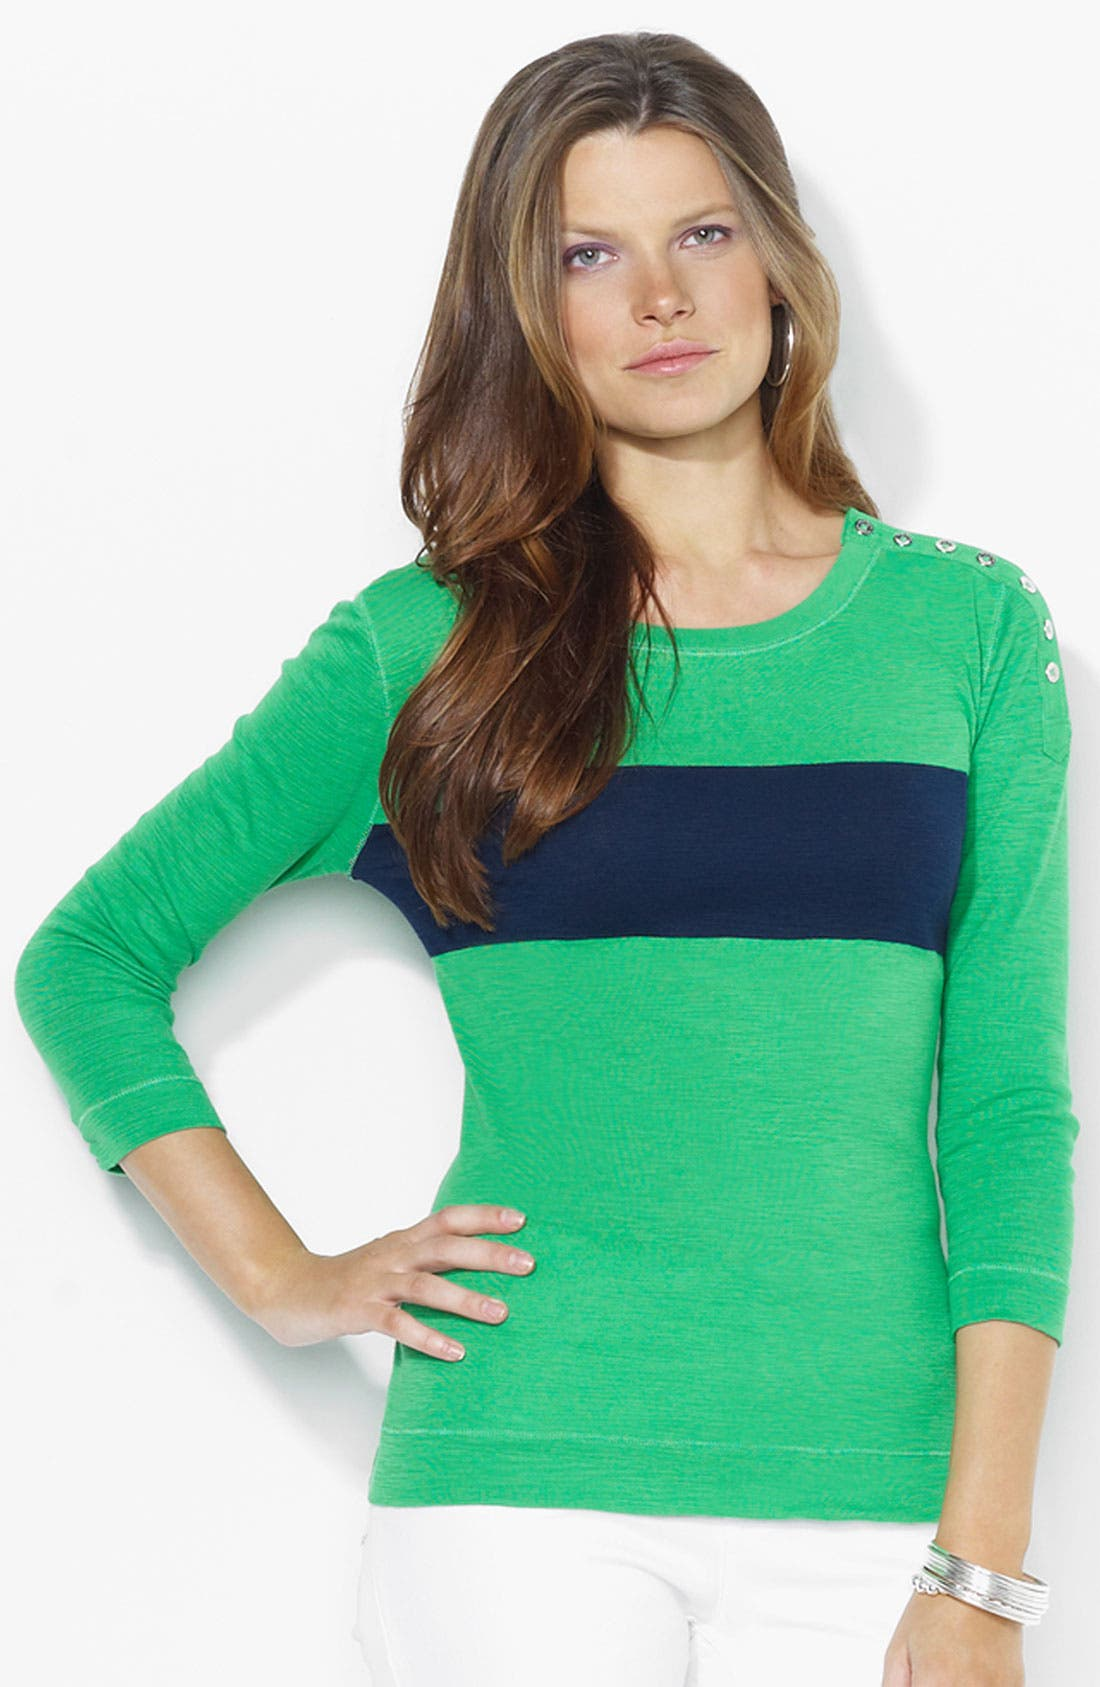 Alternate Image 1 Selected - Lauren Ralph Lauren Button Shoulder Top (Petite) (Online Exclusive)